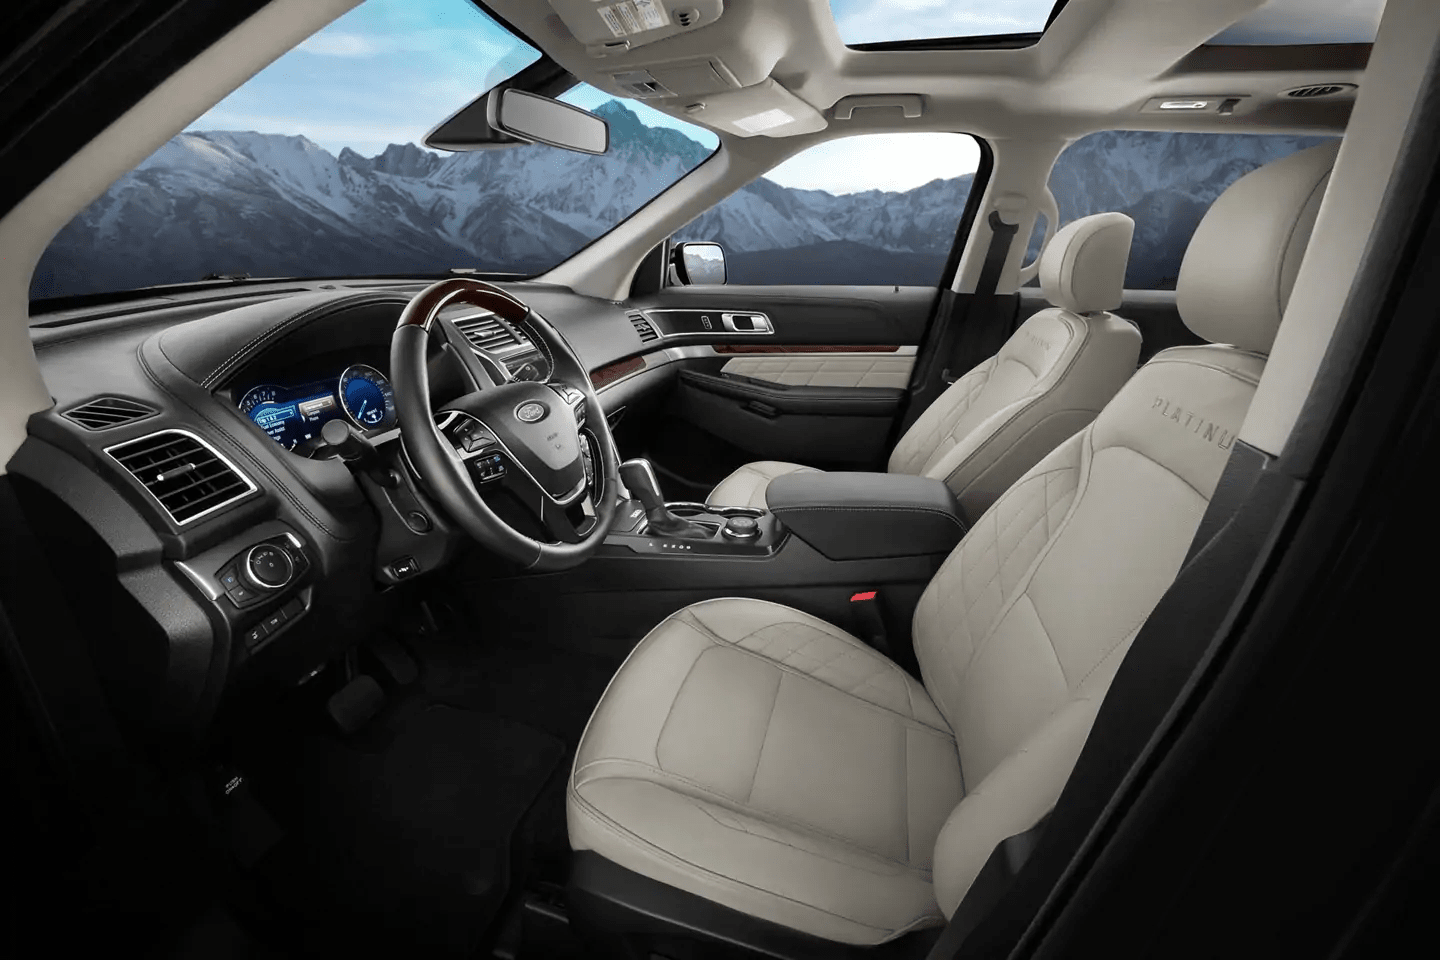 2019 Ford Explorer interior with towing feature